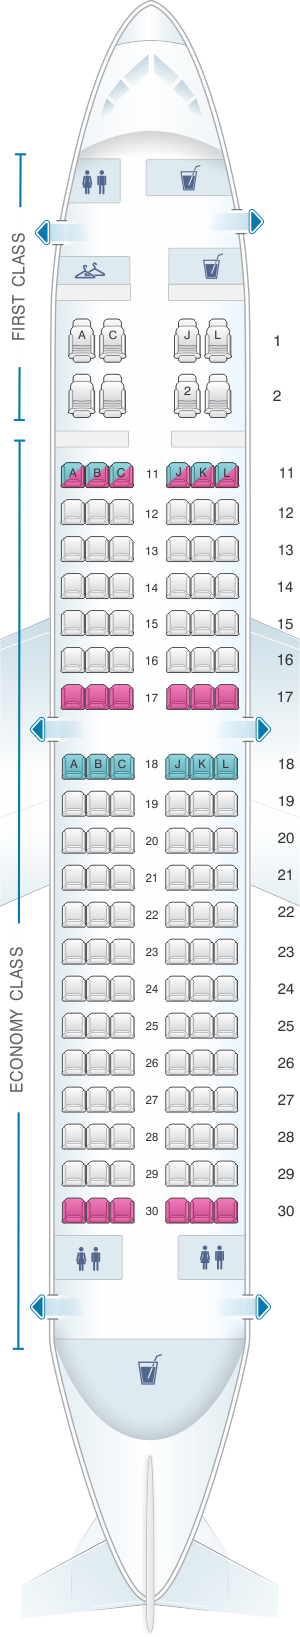 Seat map for Air China Boeing B737 300